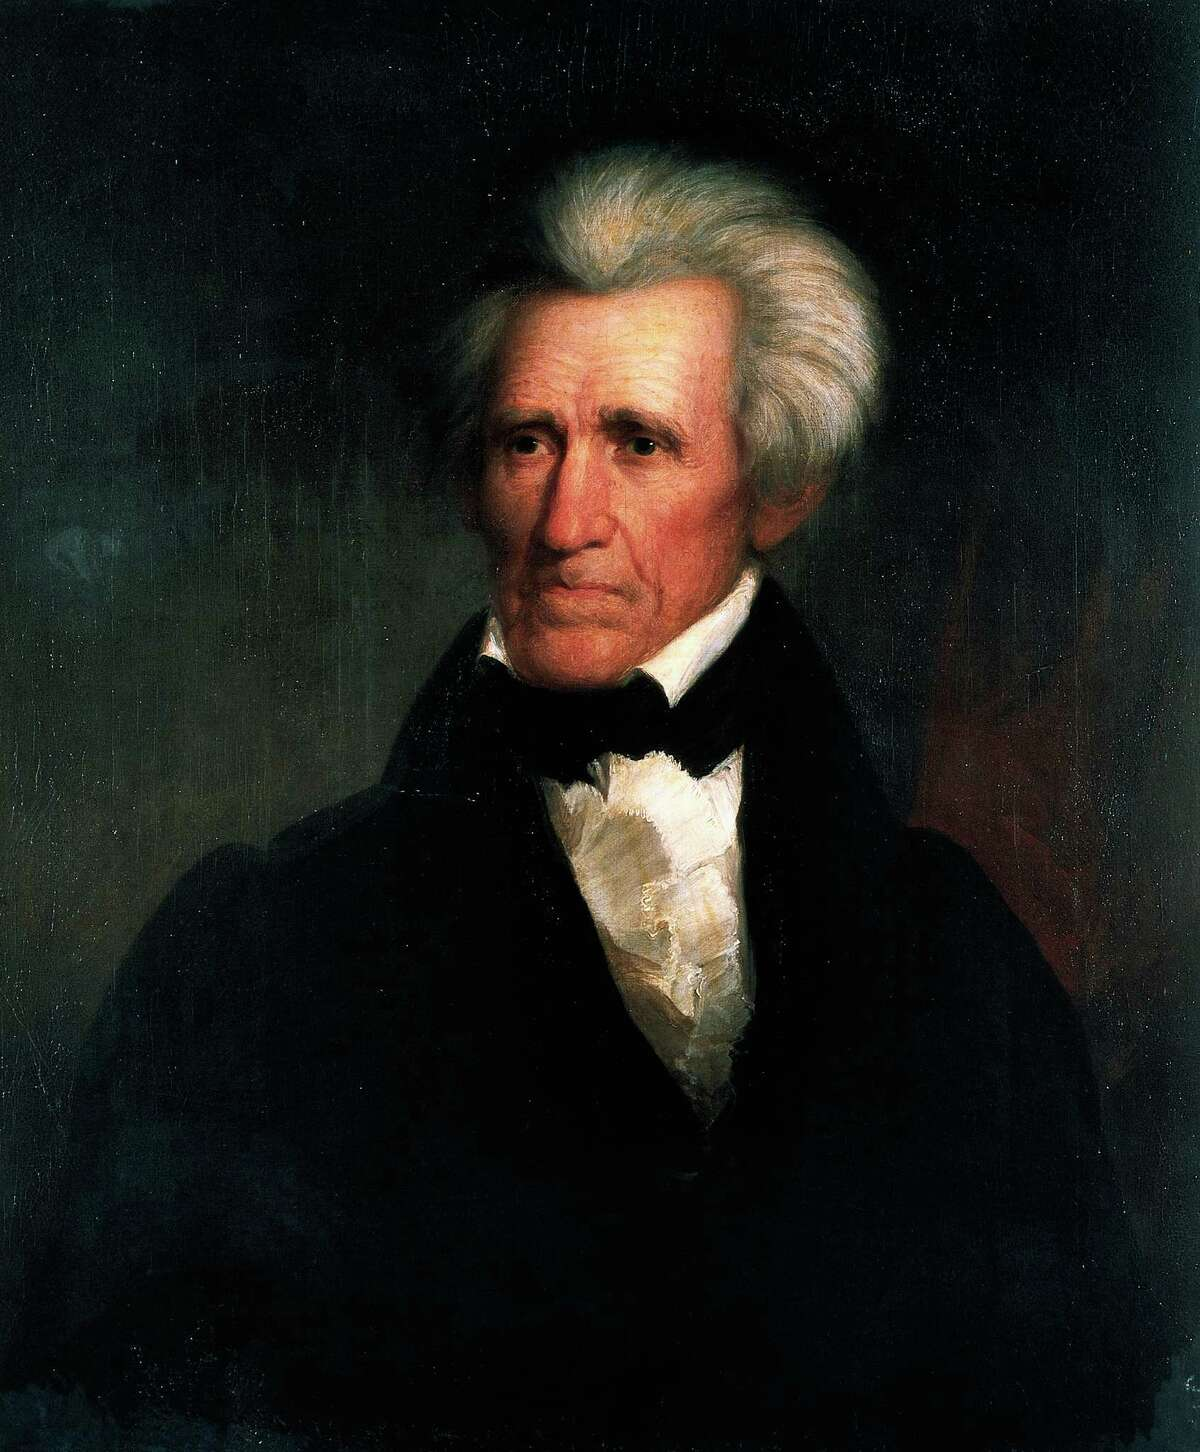 Portrait of Andrew Jackson painting by Asher Brown Durand